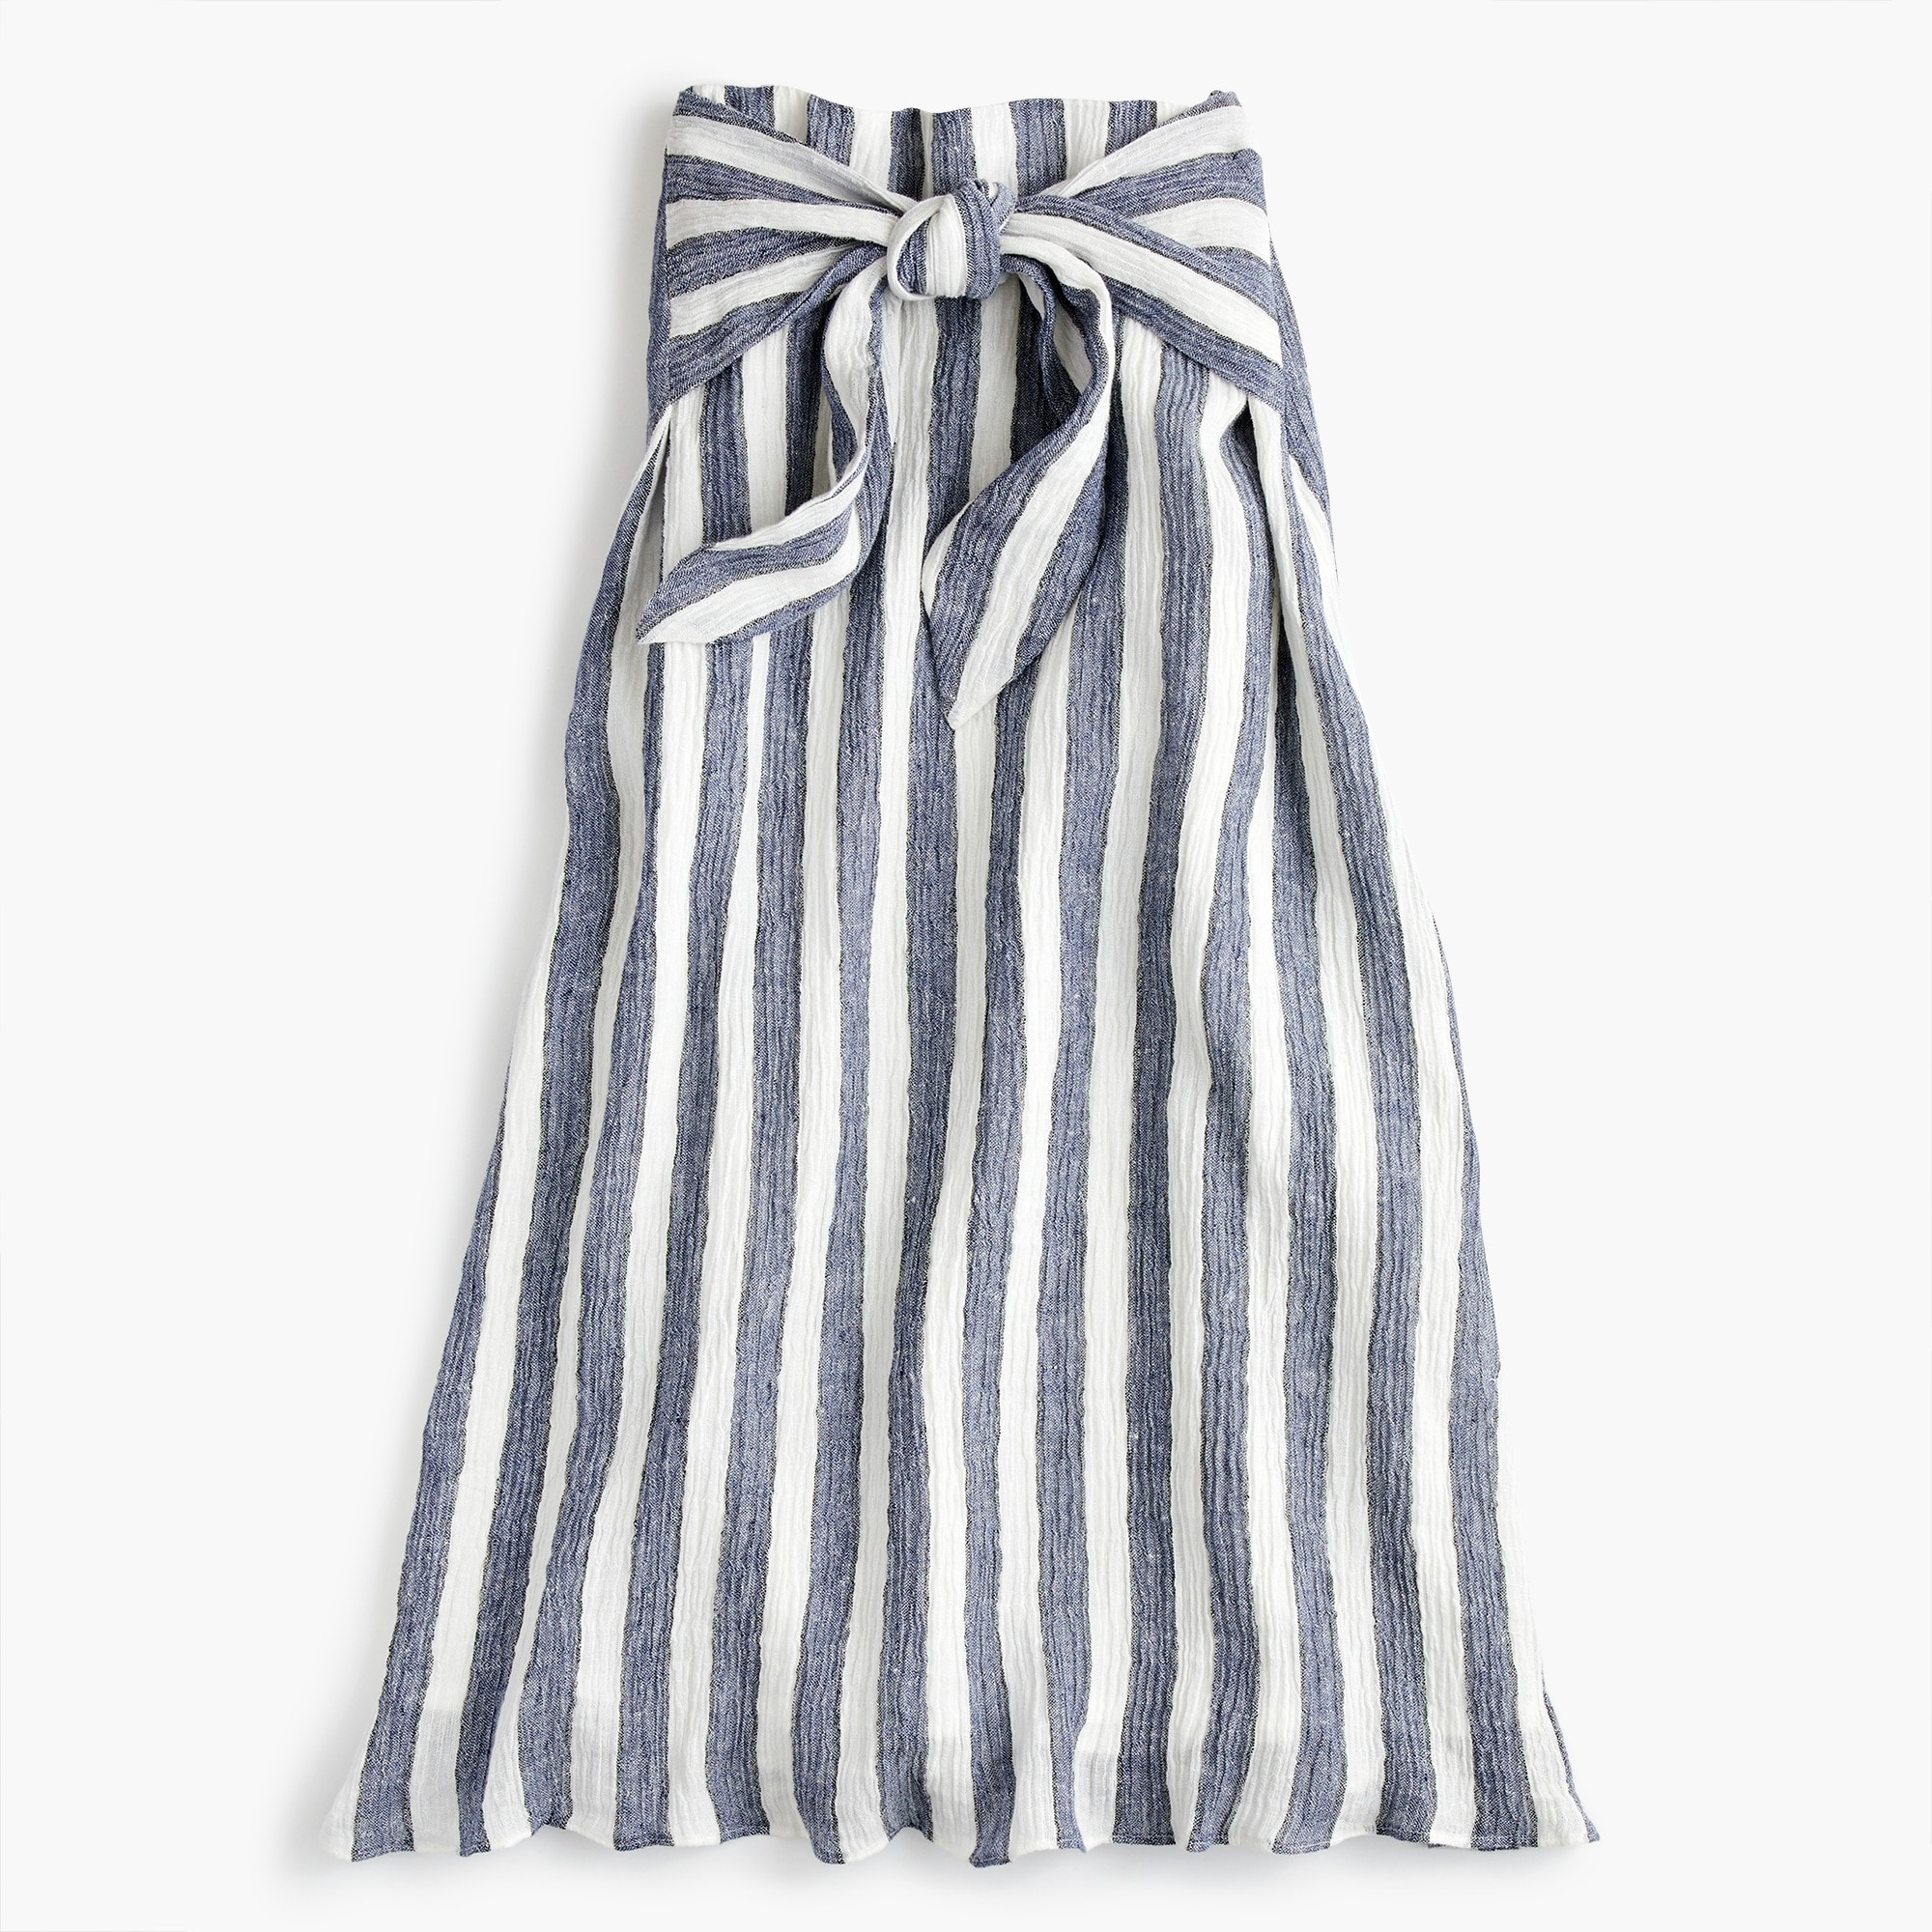 Image 5 for Point Sur tie-waist skirt in nautical striped linen